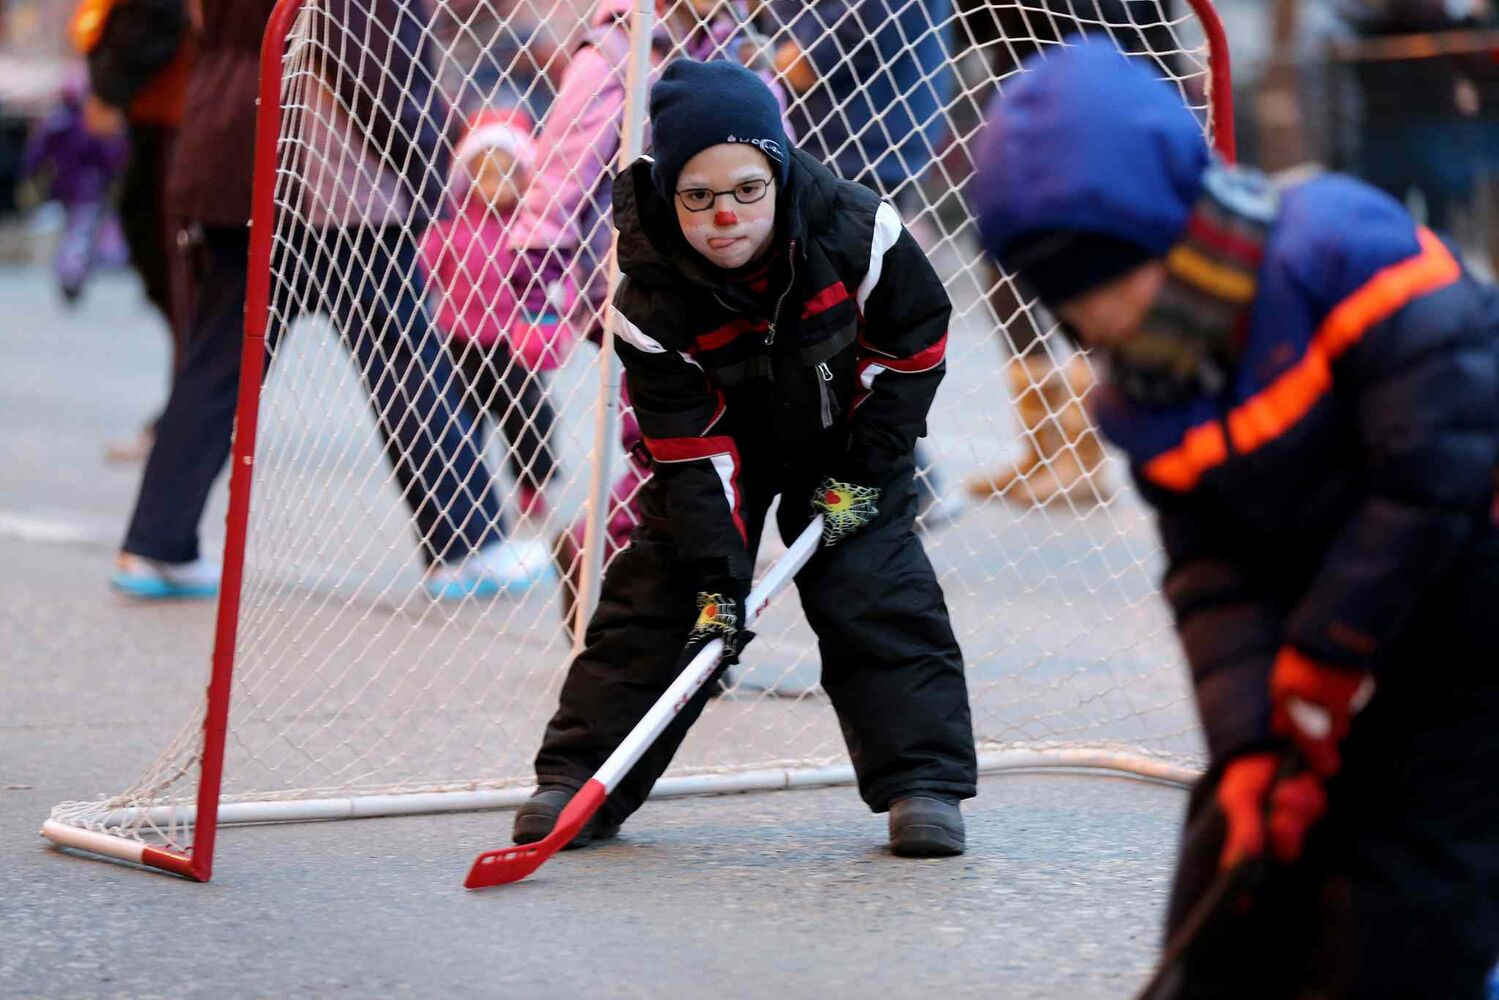 A game of street hockey kept kids busy while waiting for Santa.